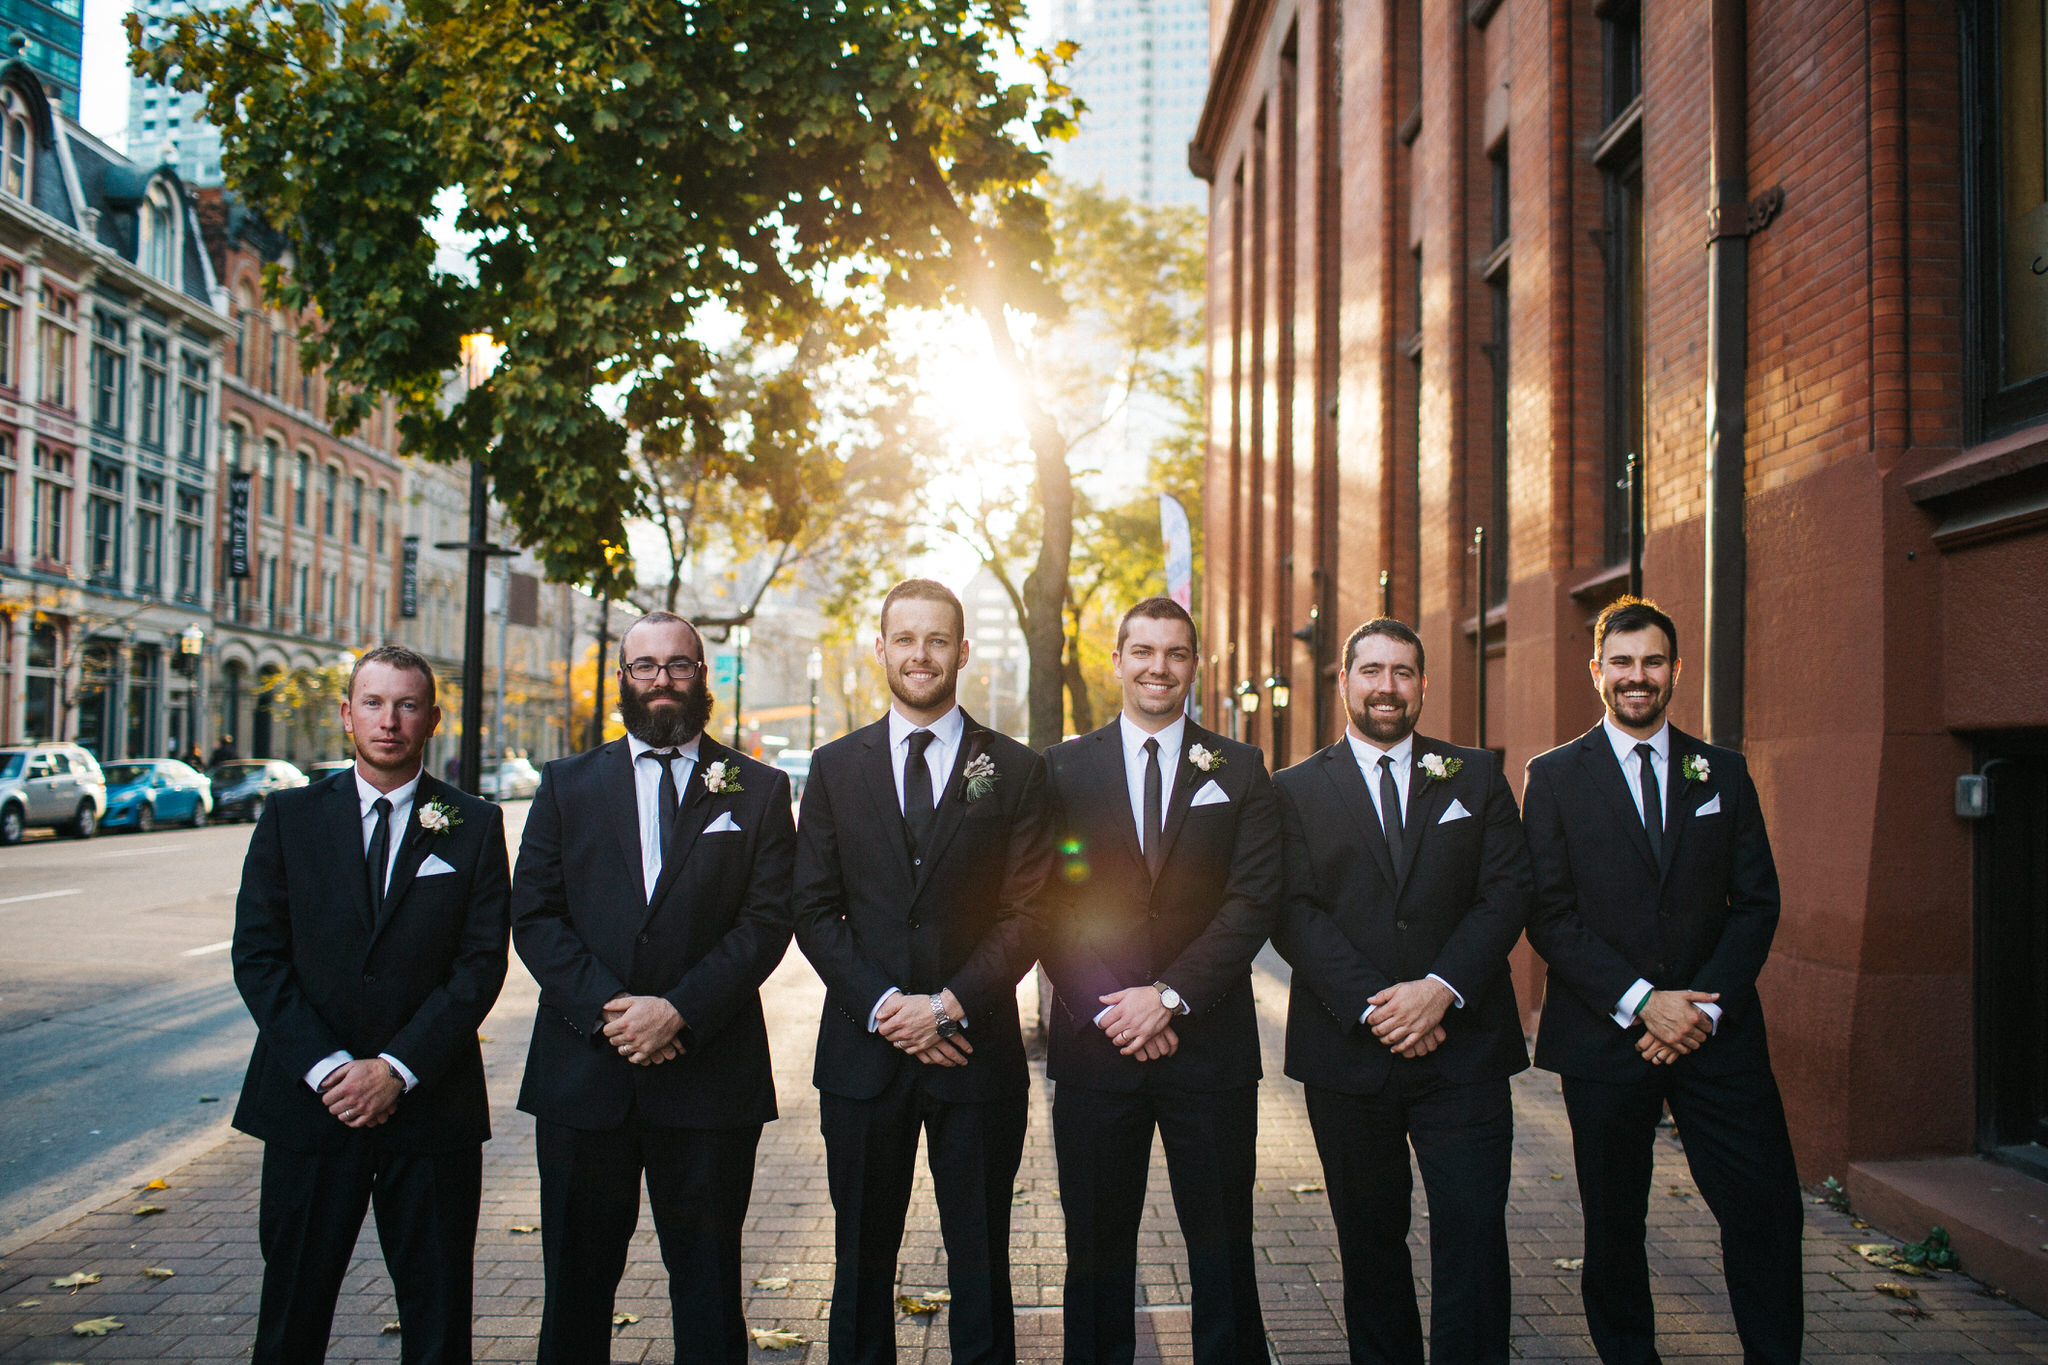 groomsmen at flatiron building, Flatiron building toronto, wedding party photos, toronto wedding, berkeley church wedding, wedding photographer toronto